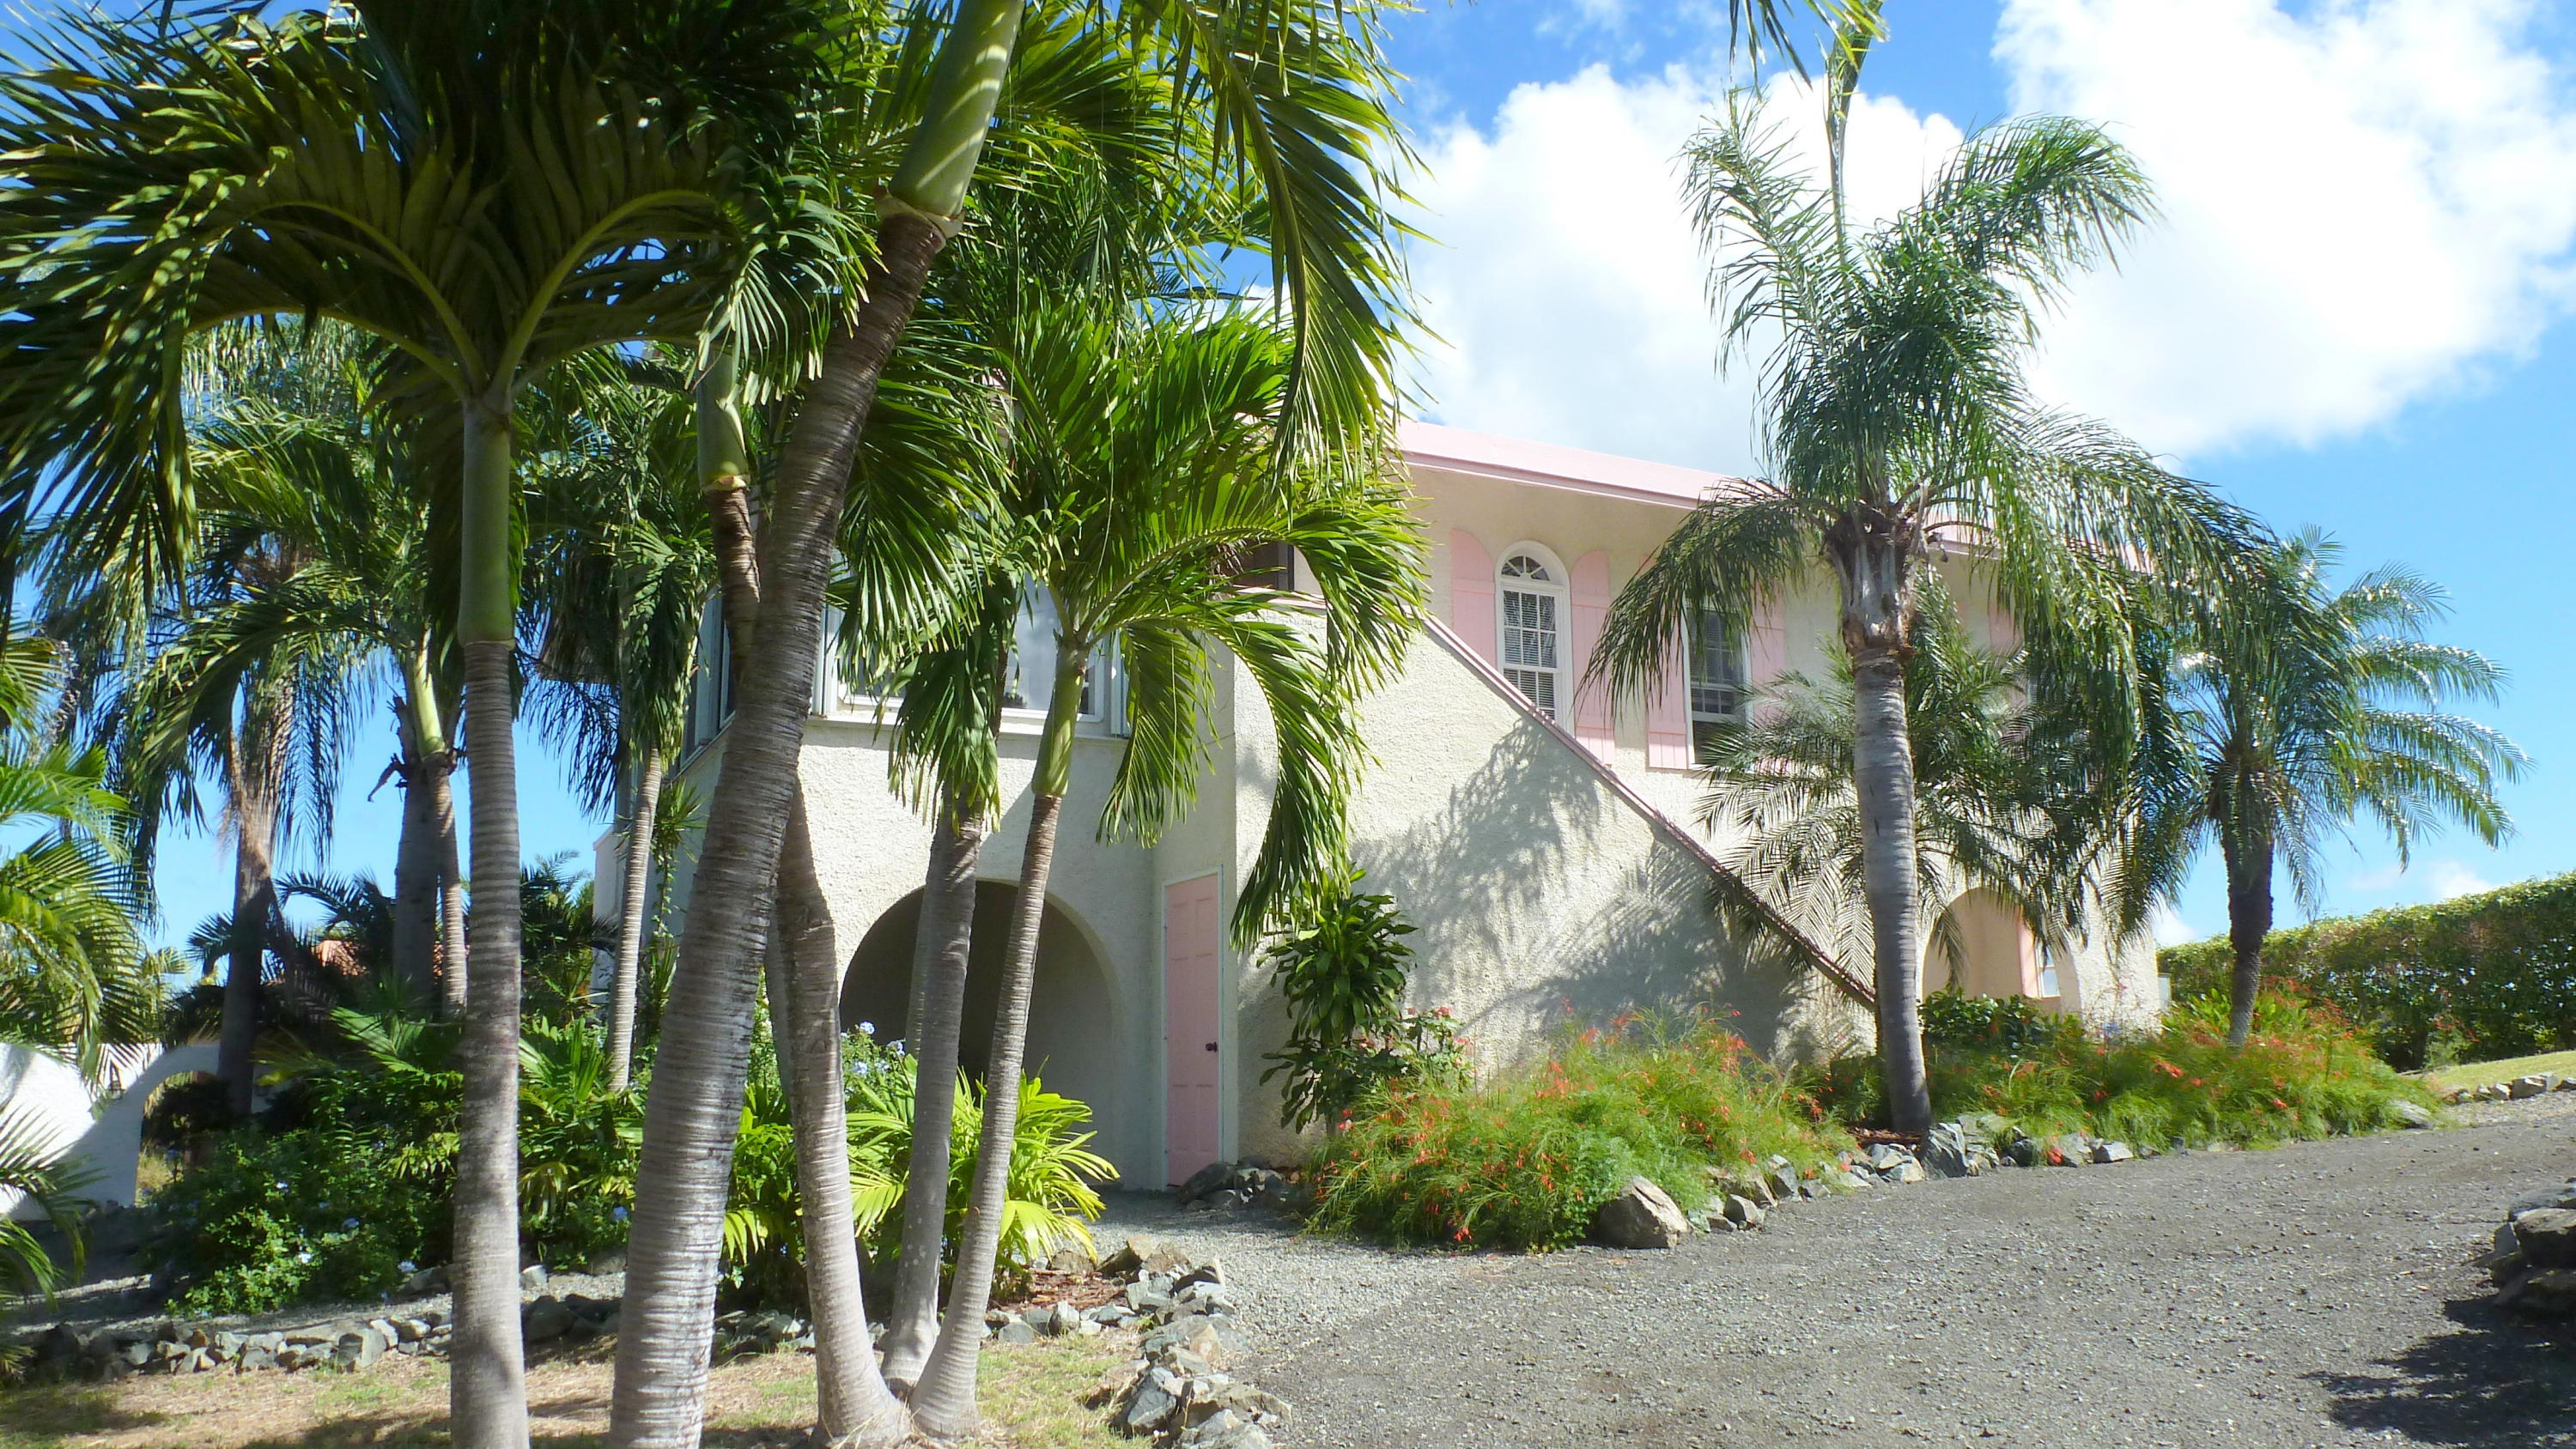 Single Family Home for Sale at 90 Southgate Farm EA 90 Southgate Farm EA St Croix, Virgin Islands 00820 United States Virgin Islands